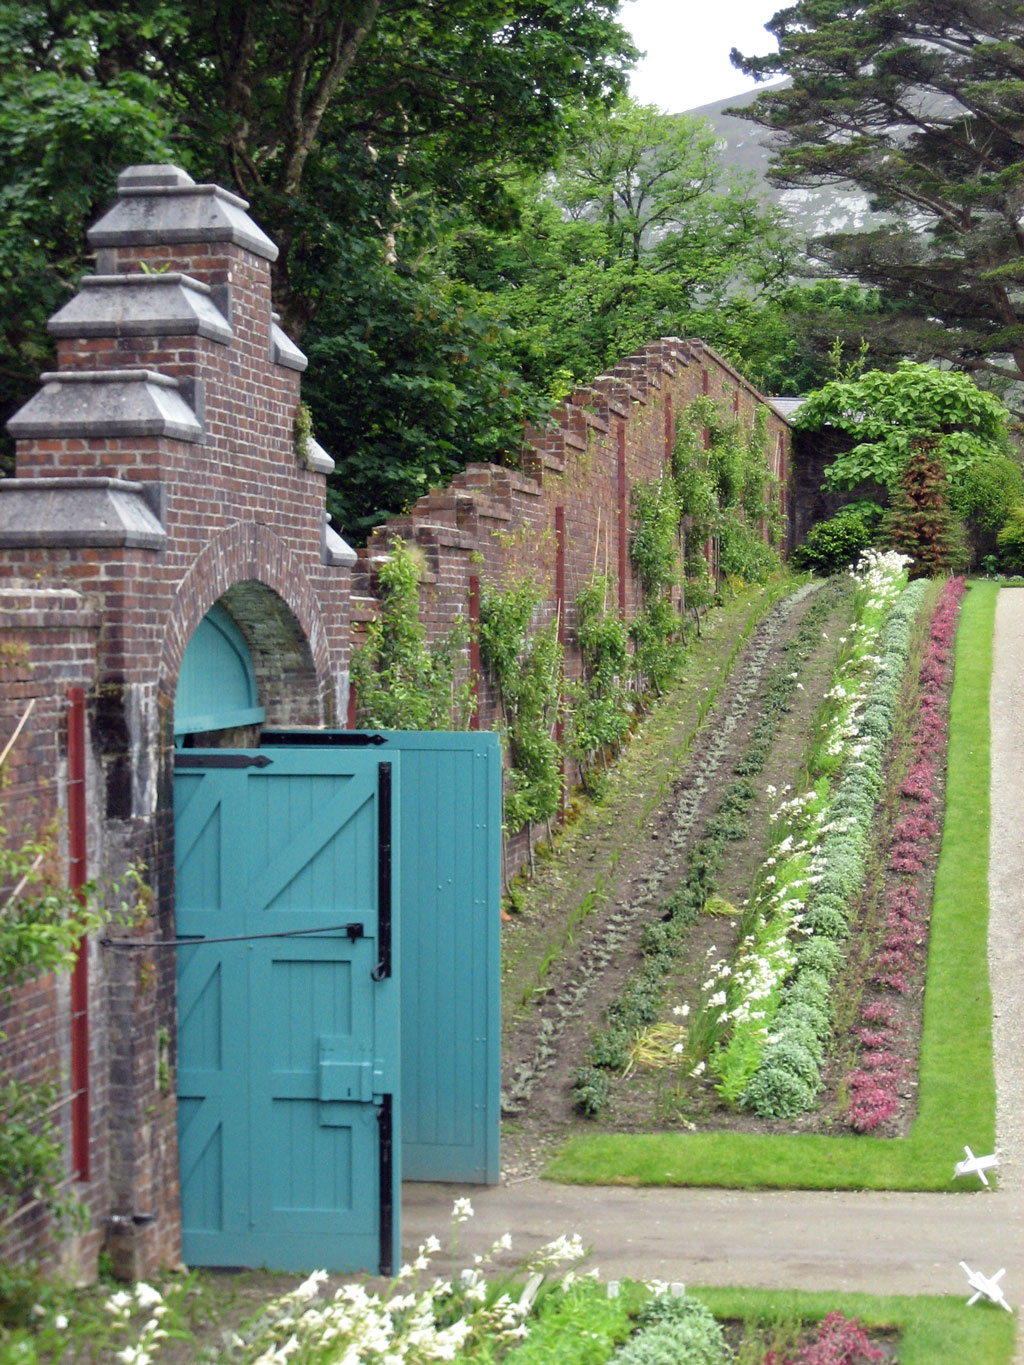 Walled Garden, Kylemore Abbey Gardens